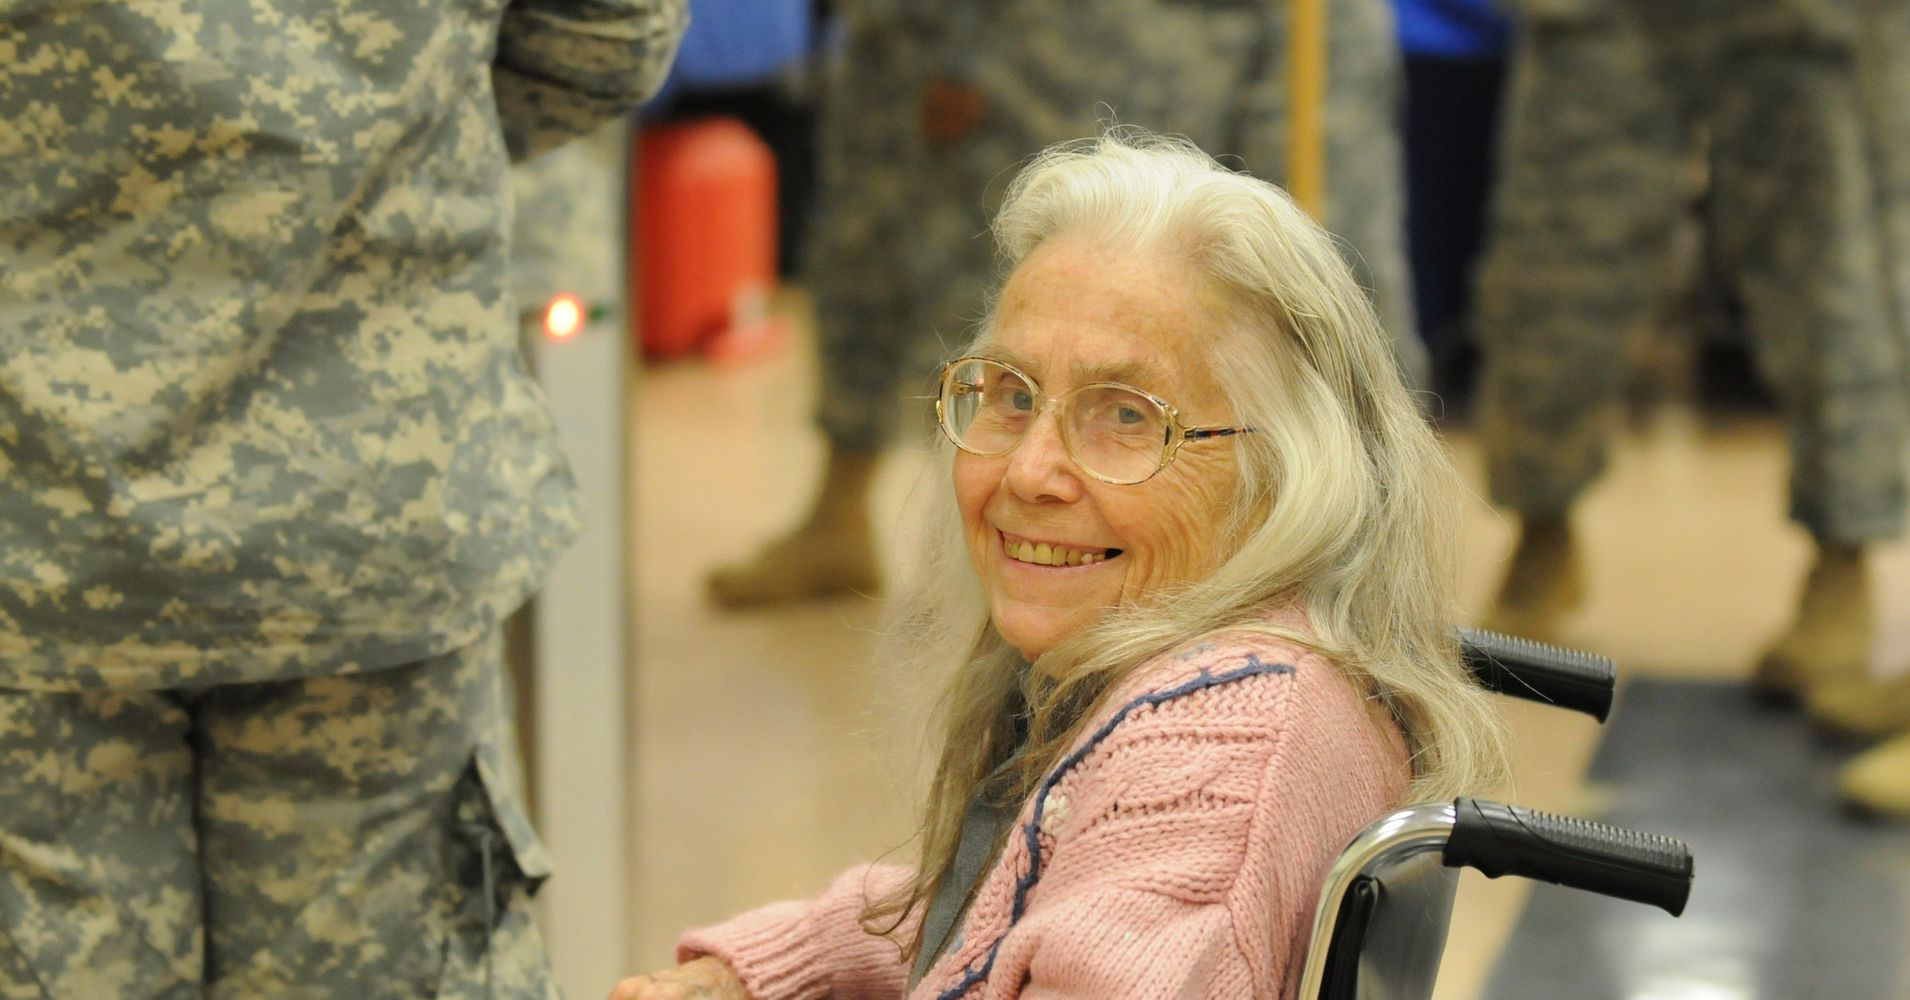 Hug Lady, 83, who gave out 500,000 hugs to soldiers